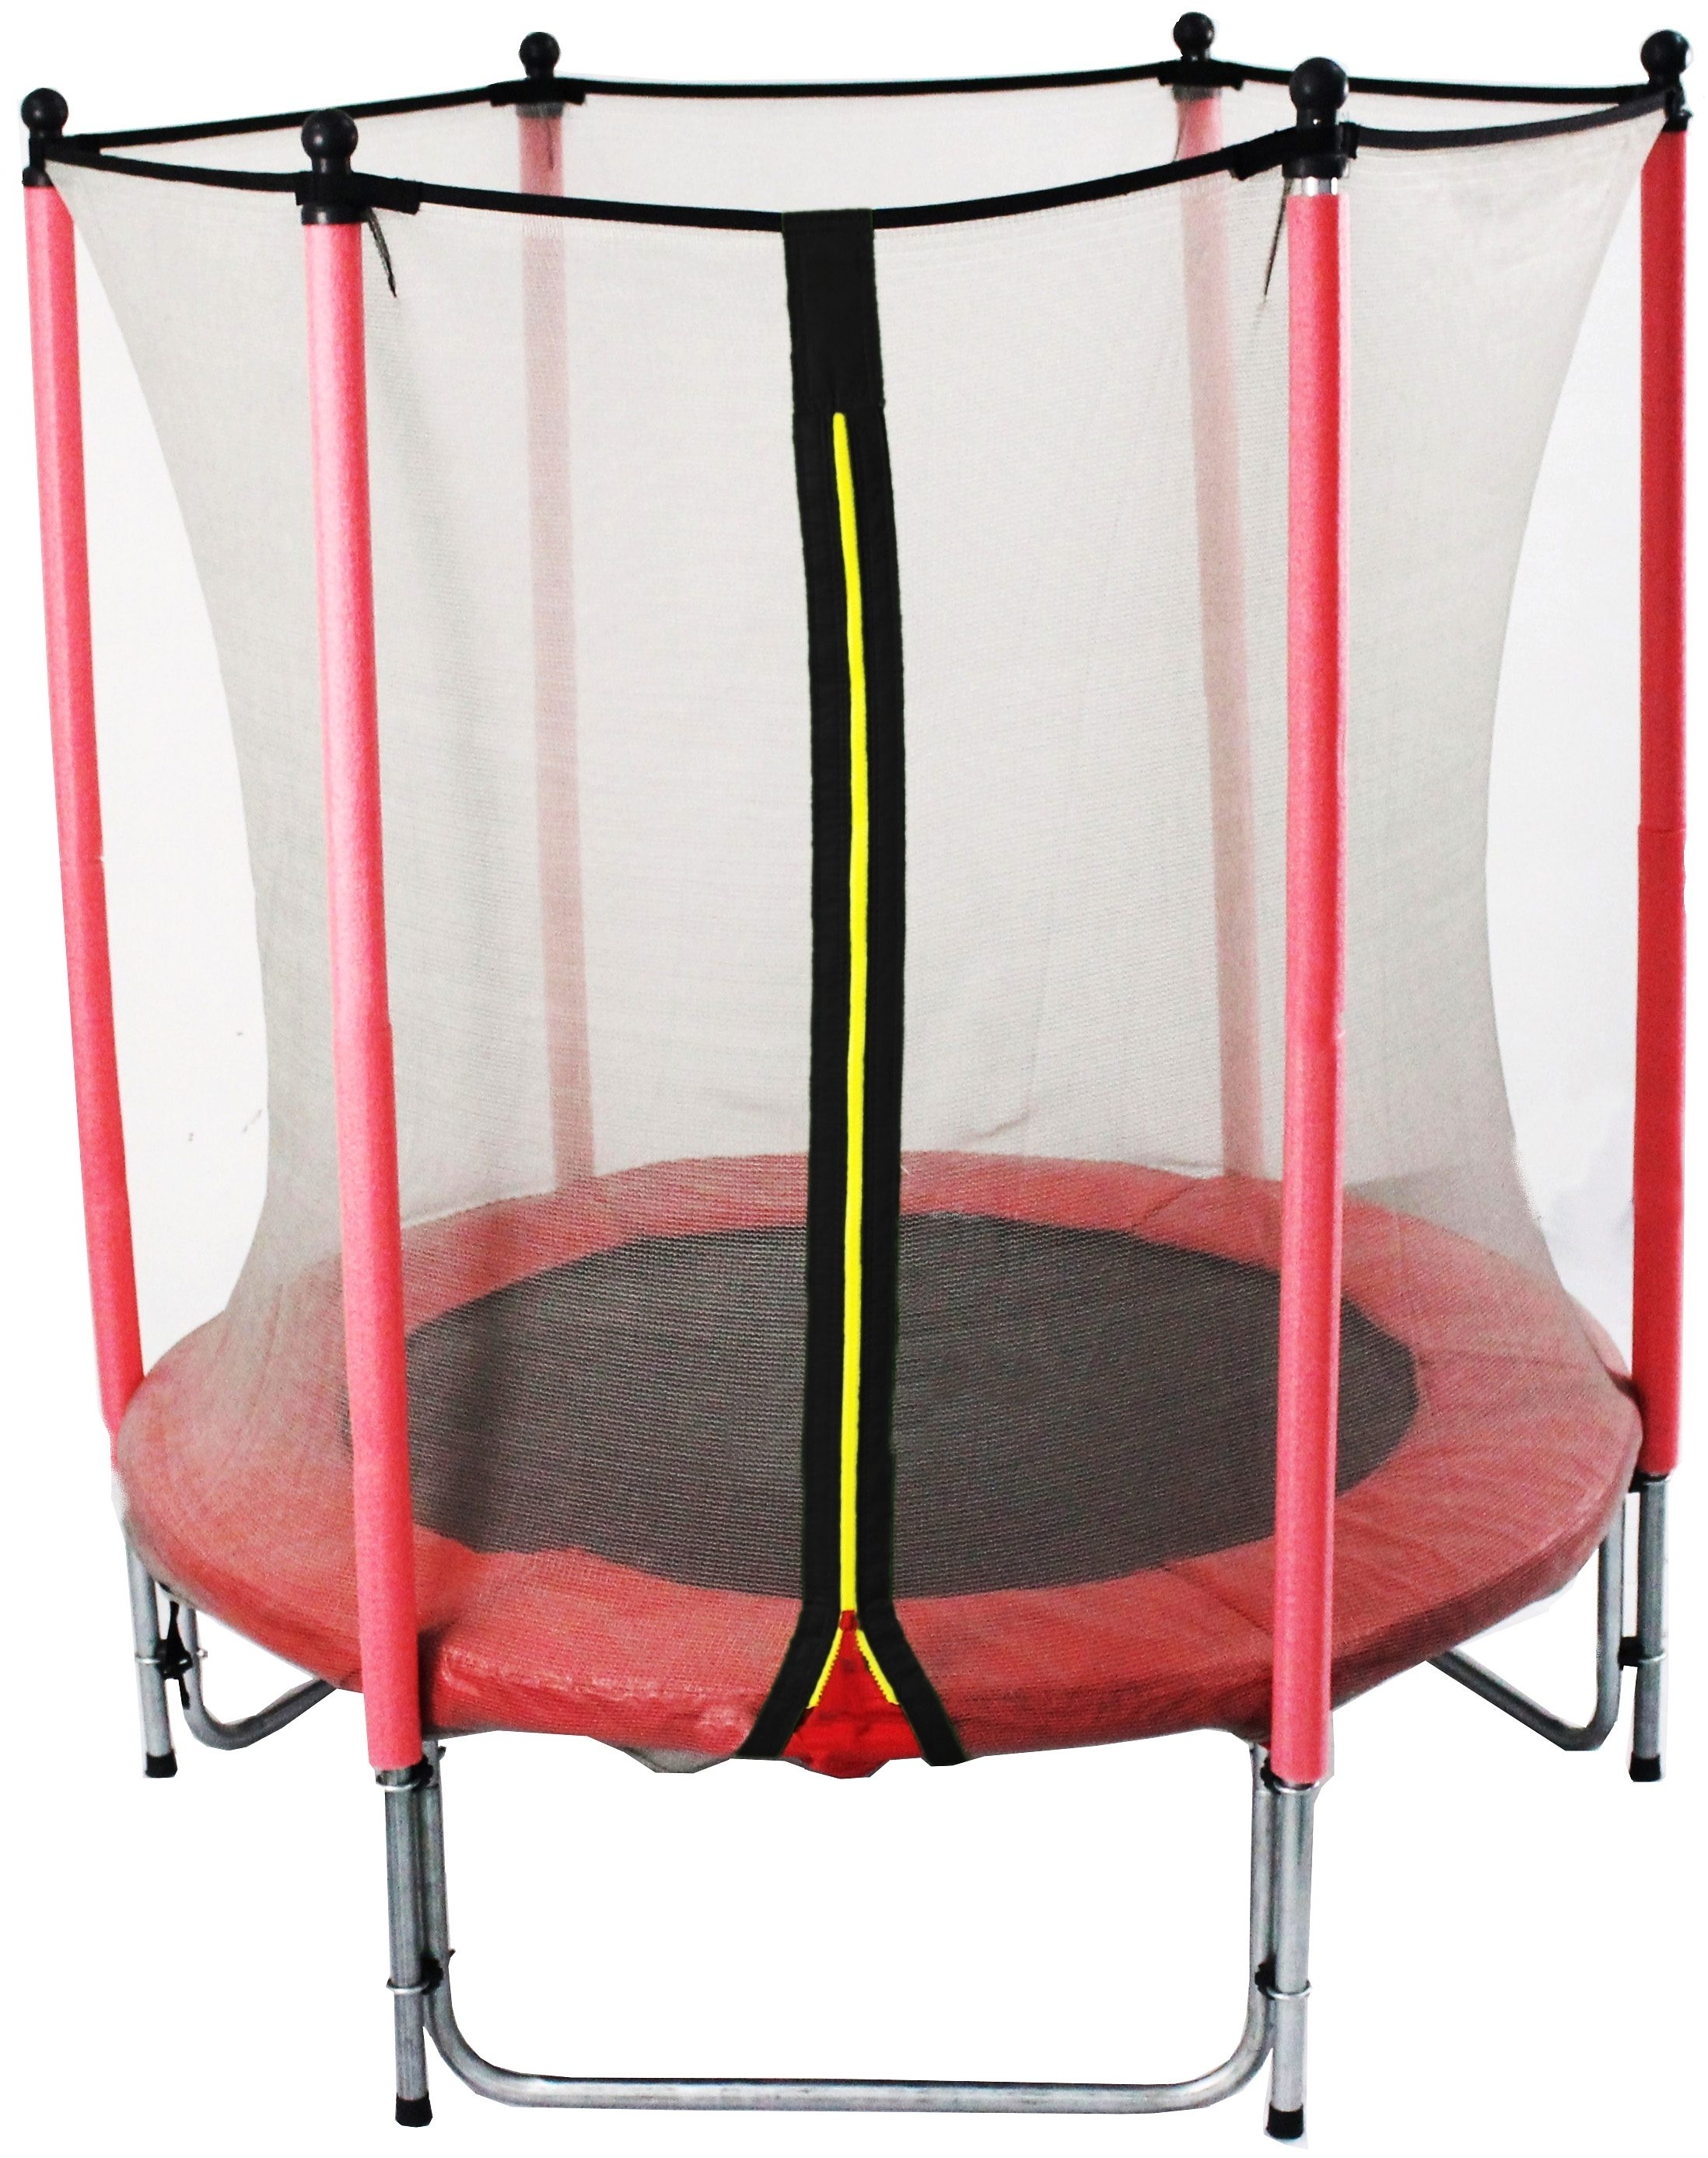 Joka Fit Kindertrampolin »Joka Fit Kindertrampolin Sport«, Ø 140 cm